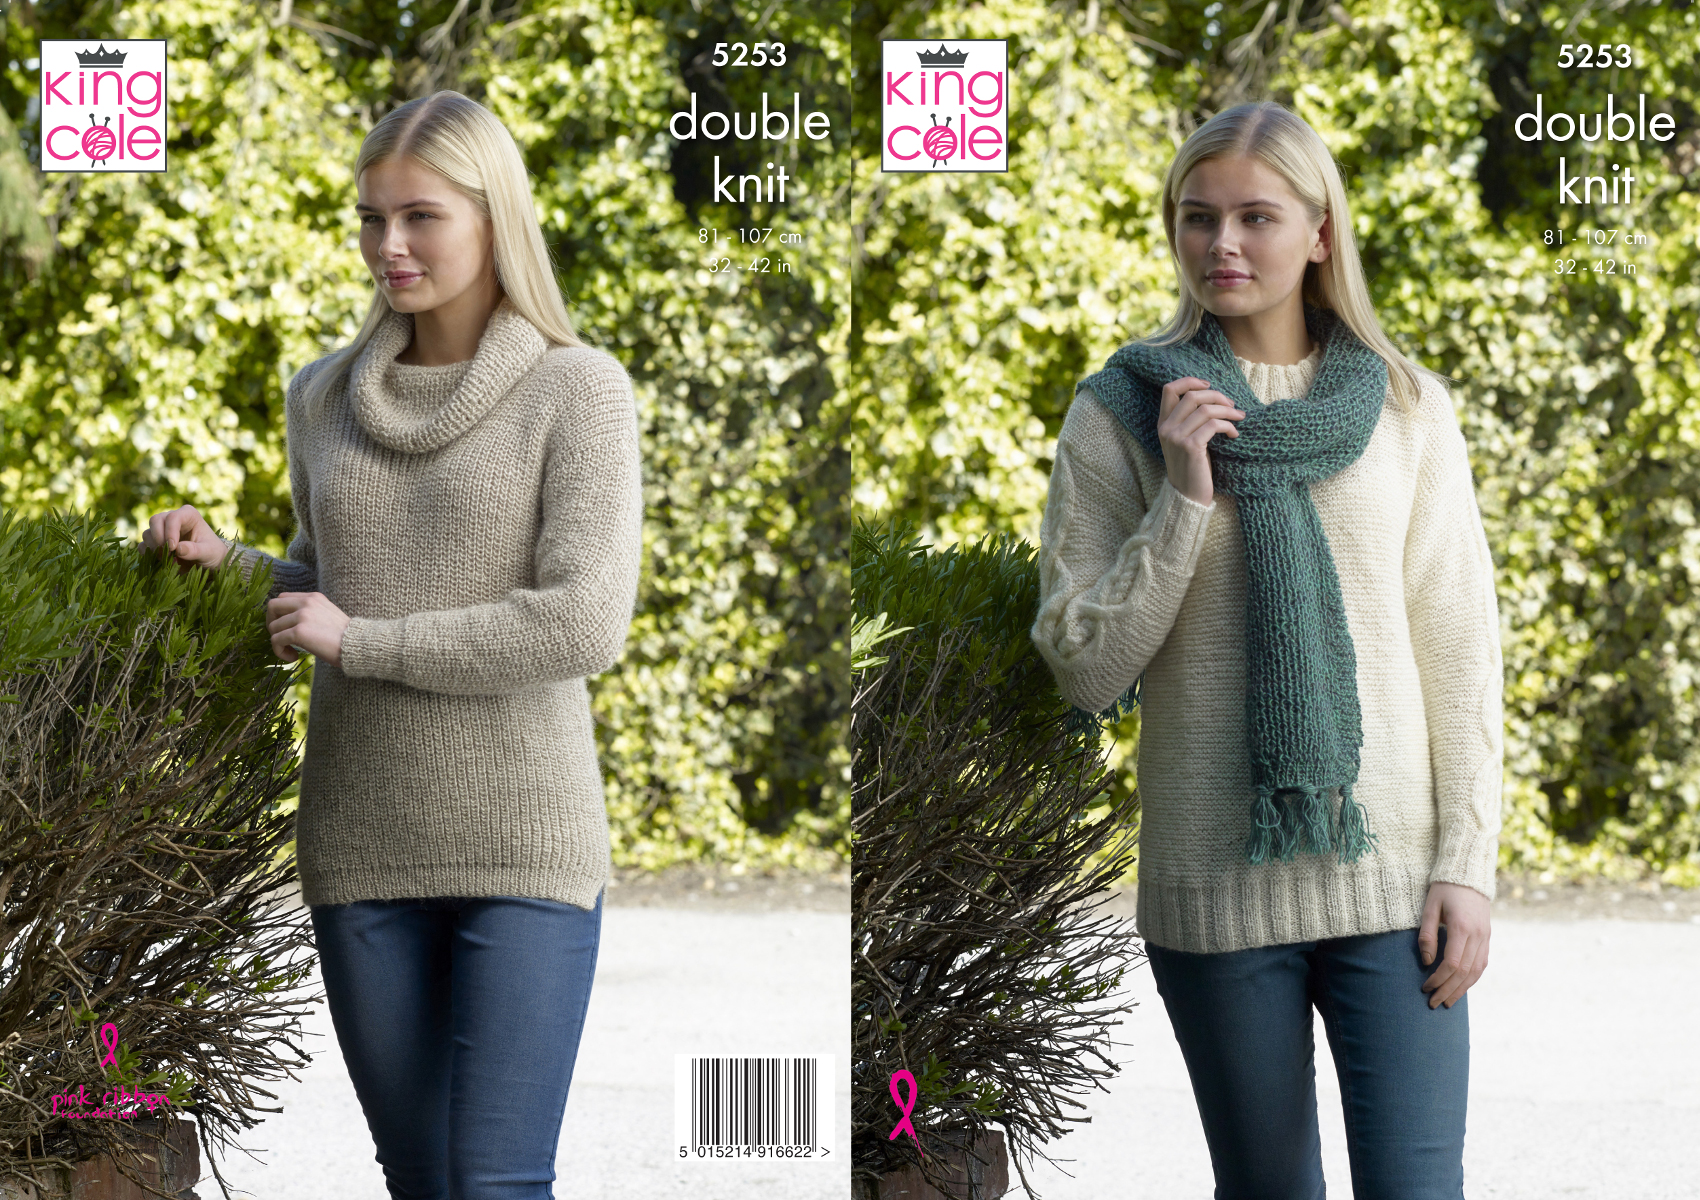 King Cole Ladies Double Knitting Pattern Cabled Or Cowl Neck Jumper